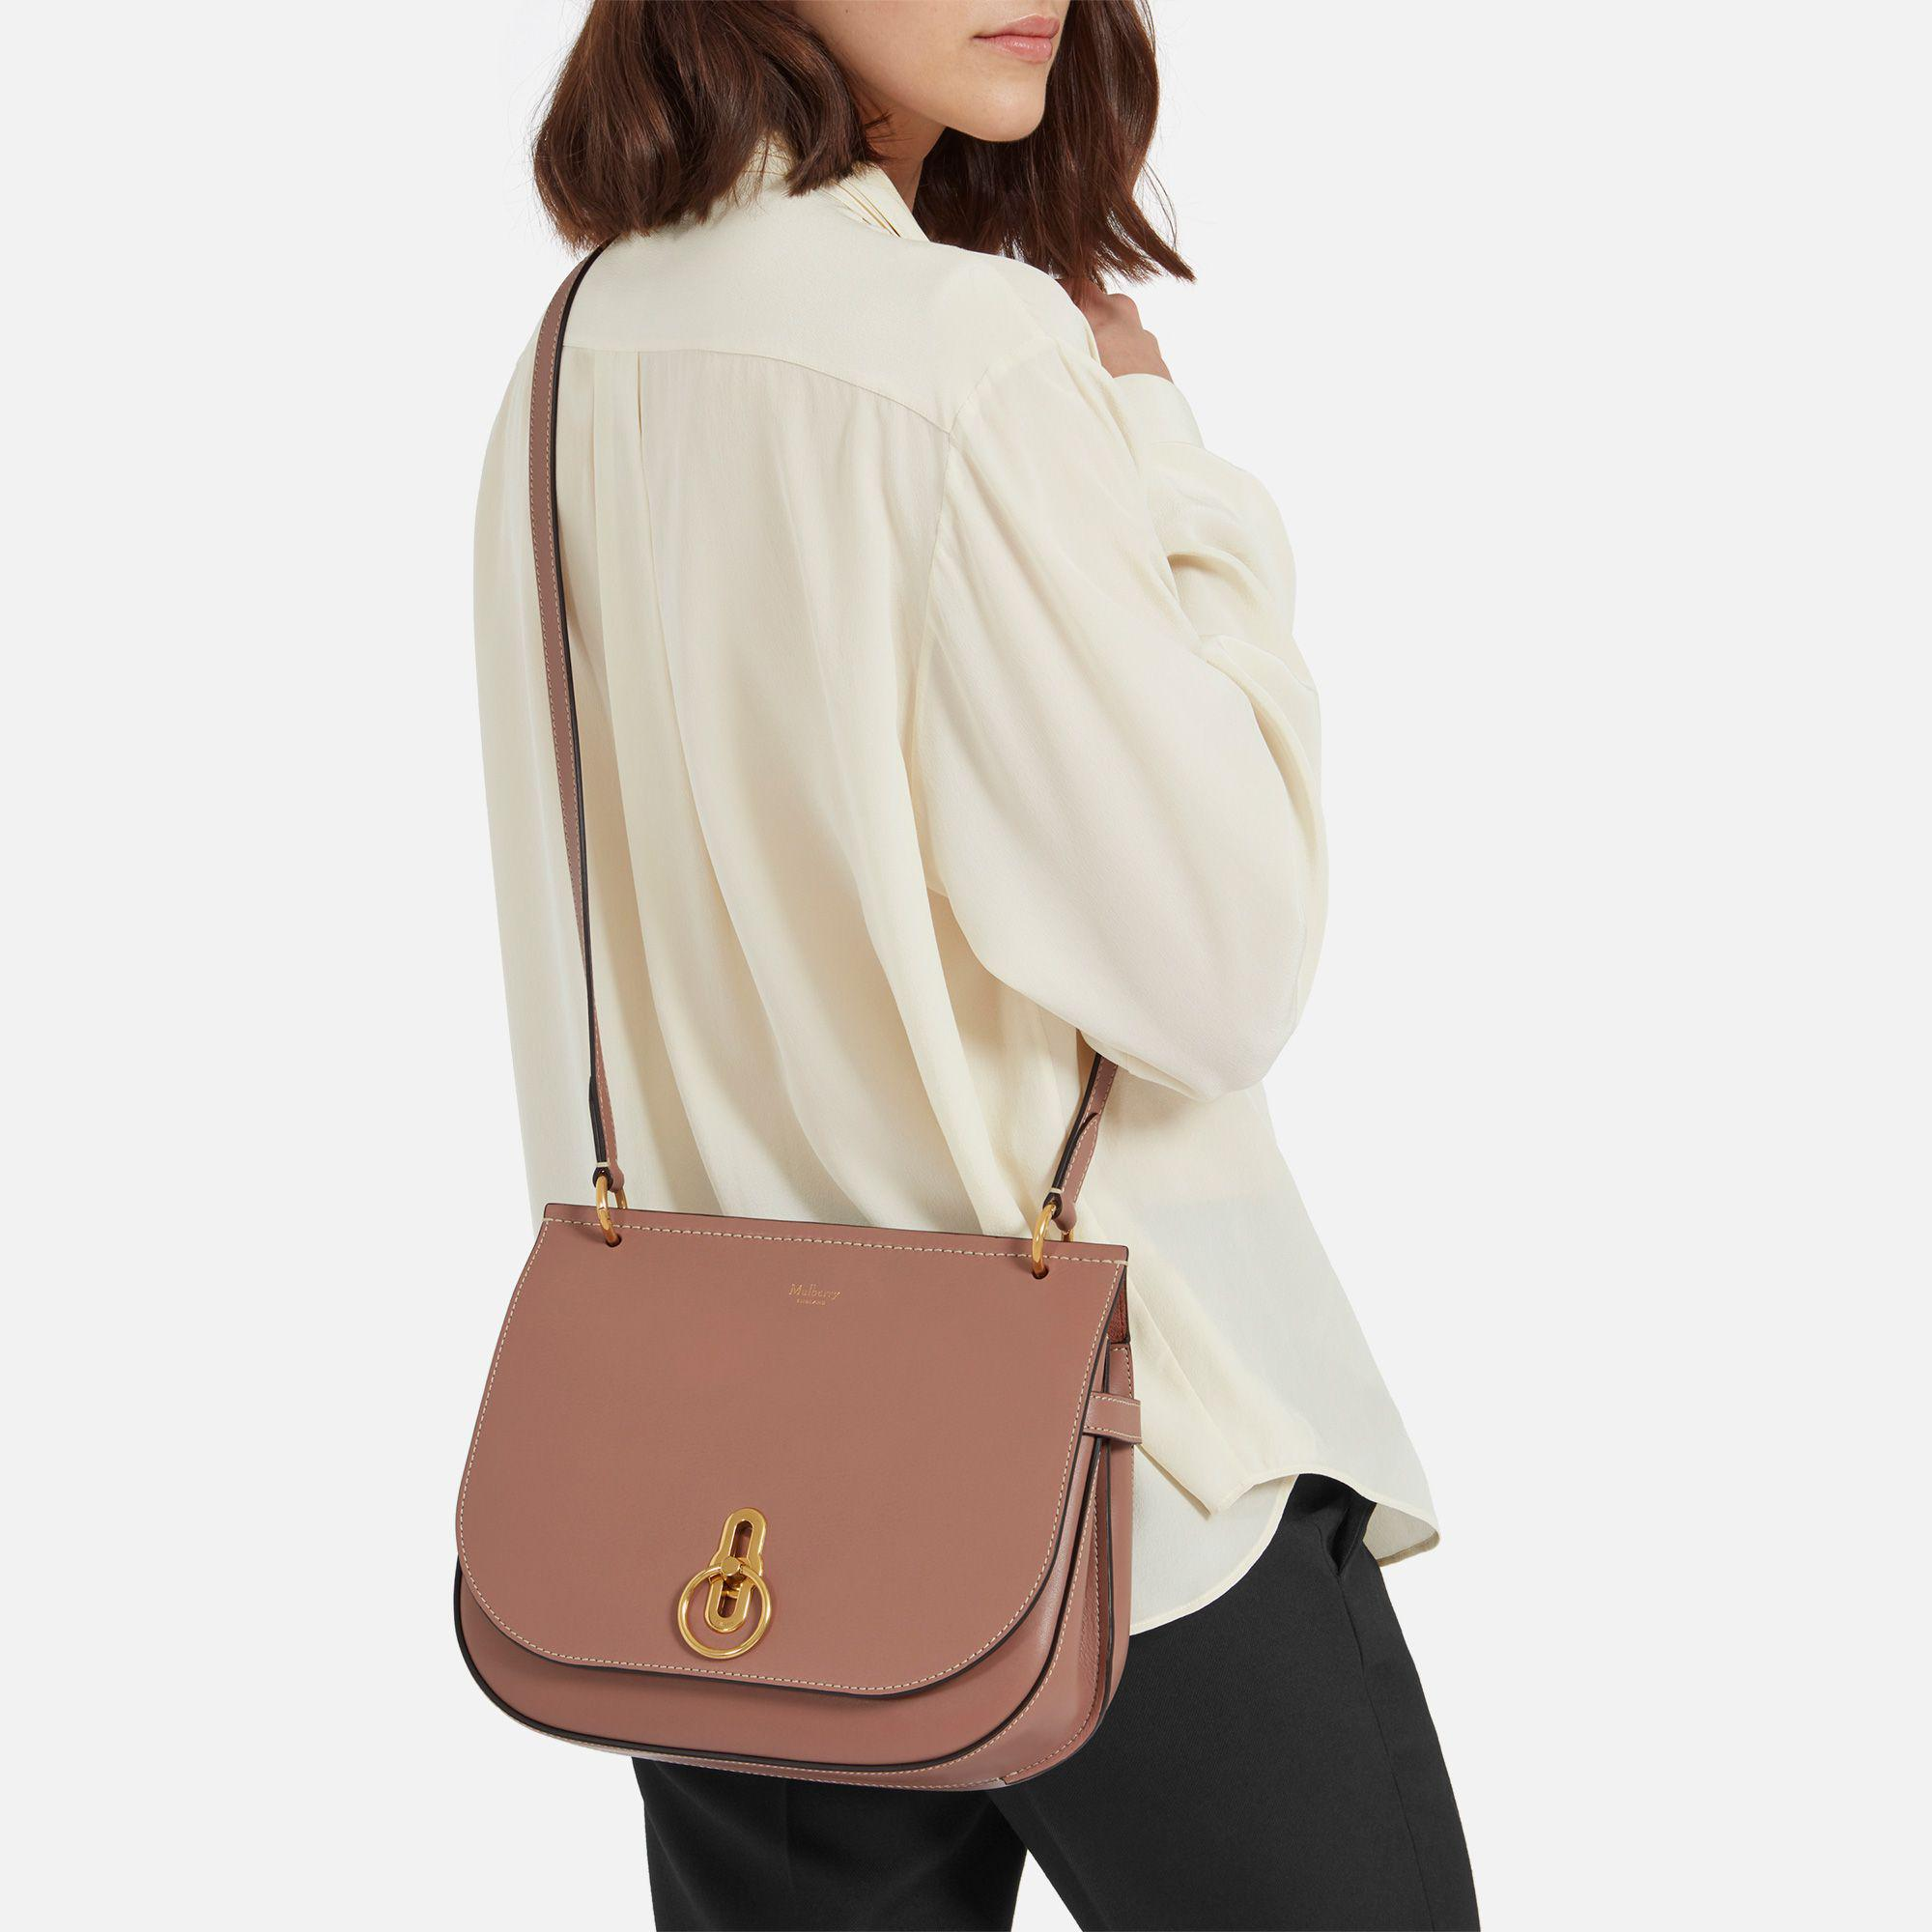 8208fa8e7e516 norway mulberry amberley pleated leather satchel bag selfridges 64af6  920a3  sale lyst mulberry amberley satchel in brown 946e9 a1d09